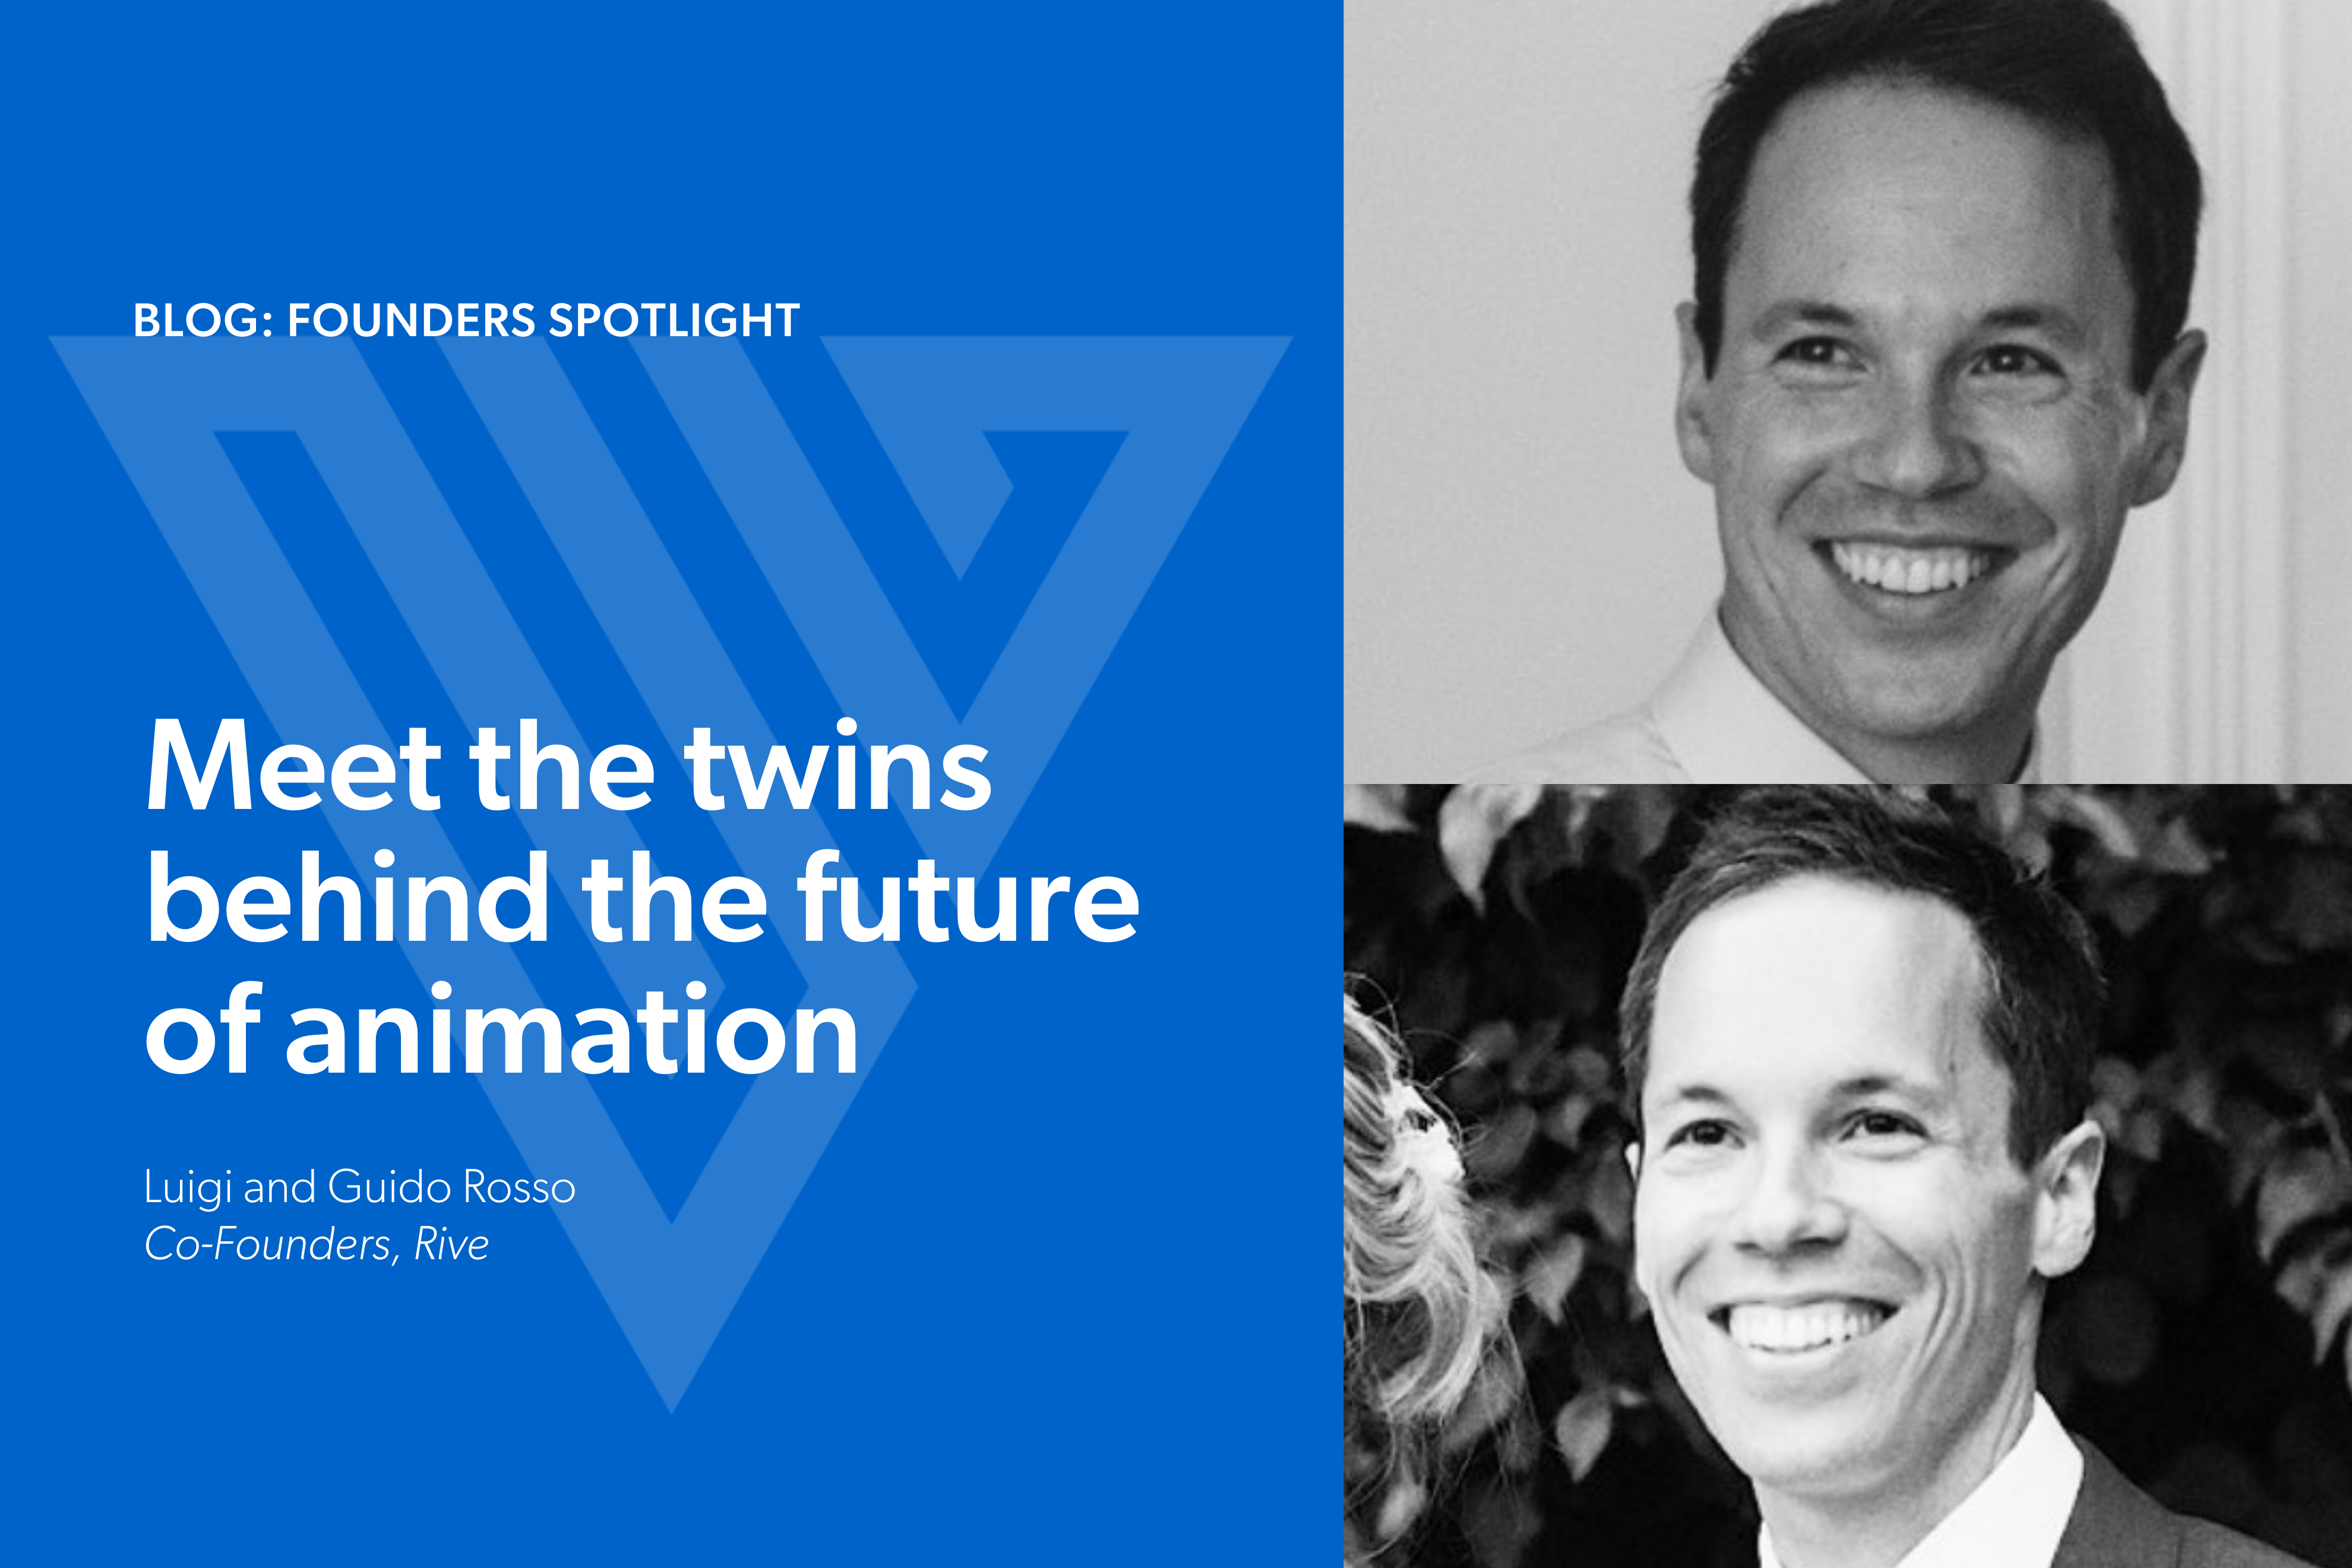 Meet the twins behind the future of animation: Luigi and Guido Rosso, Co-Founders, Rive